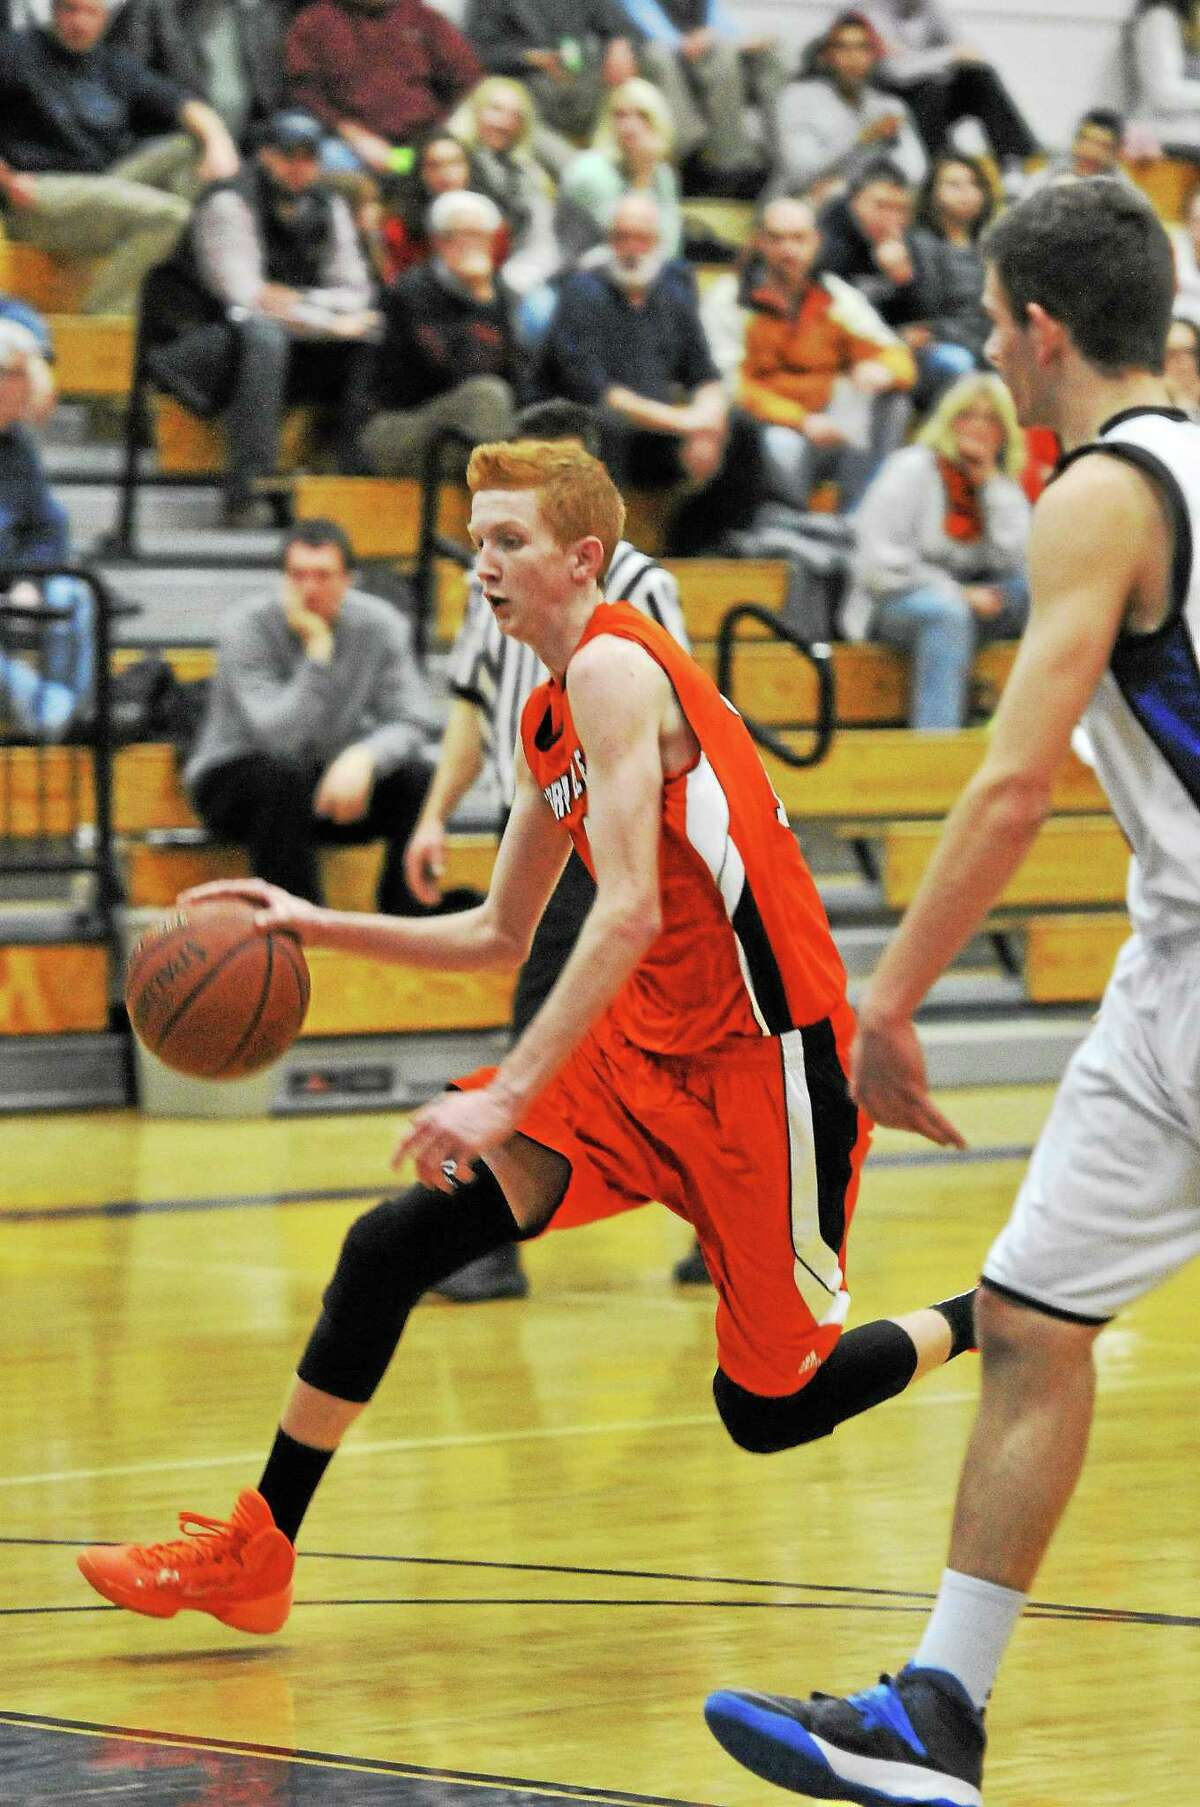 Terryville's Shea Tracy drives to the basket against Litchfield. Tracy finished the game with 18 points.